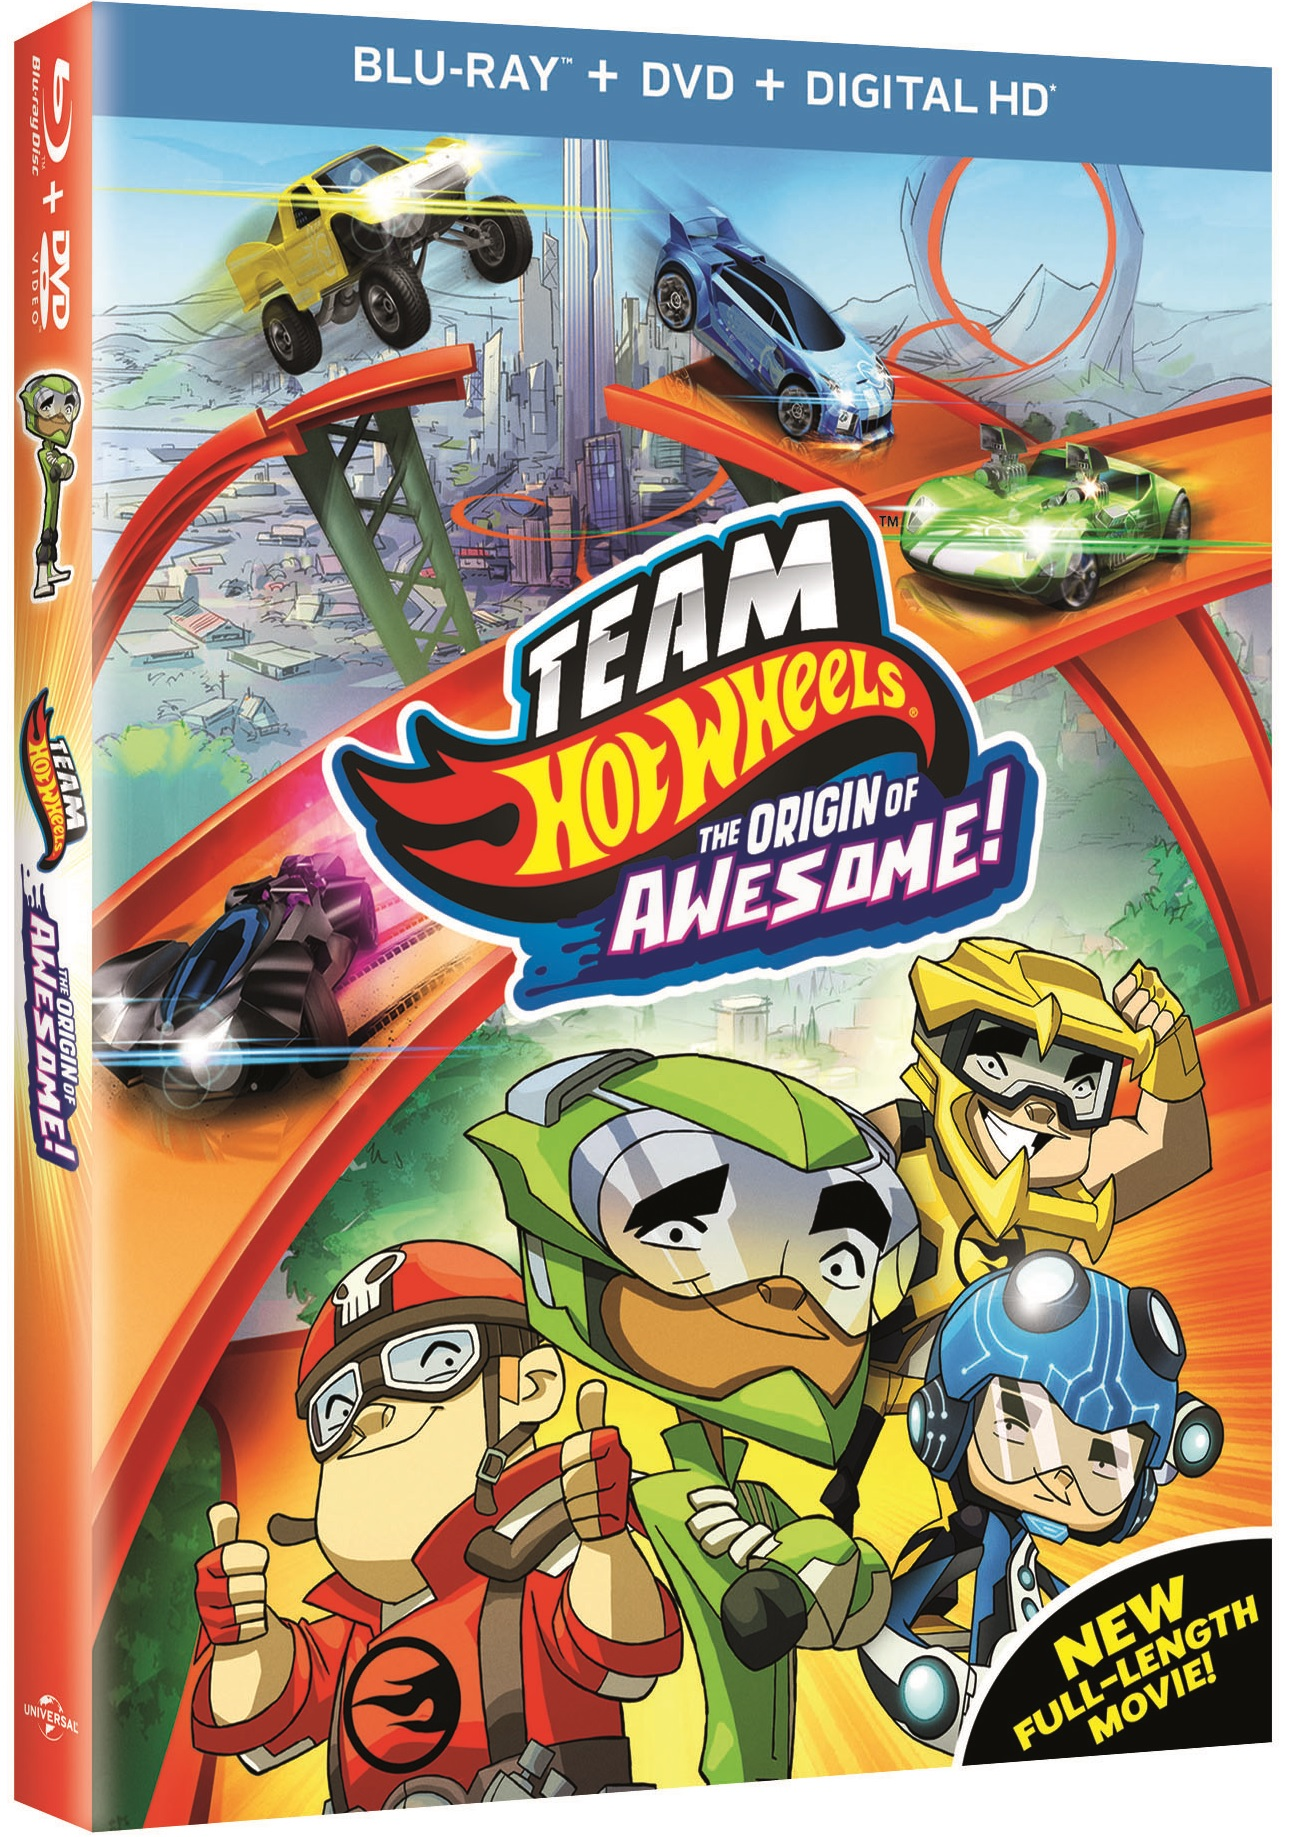 Team Hot Wheels The Origin of Awesome Blu-ray Review